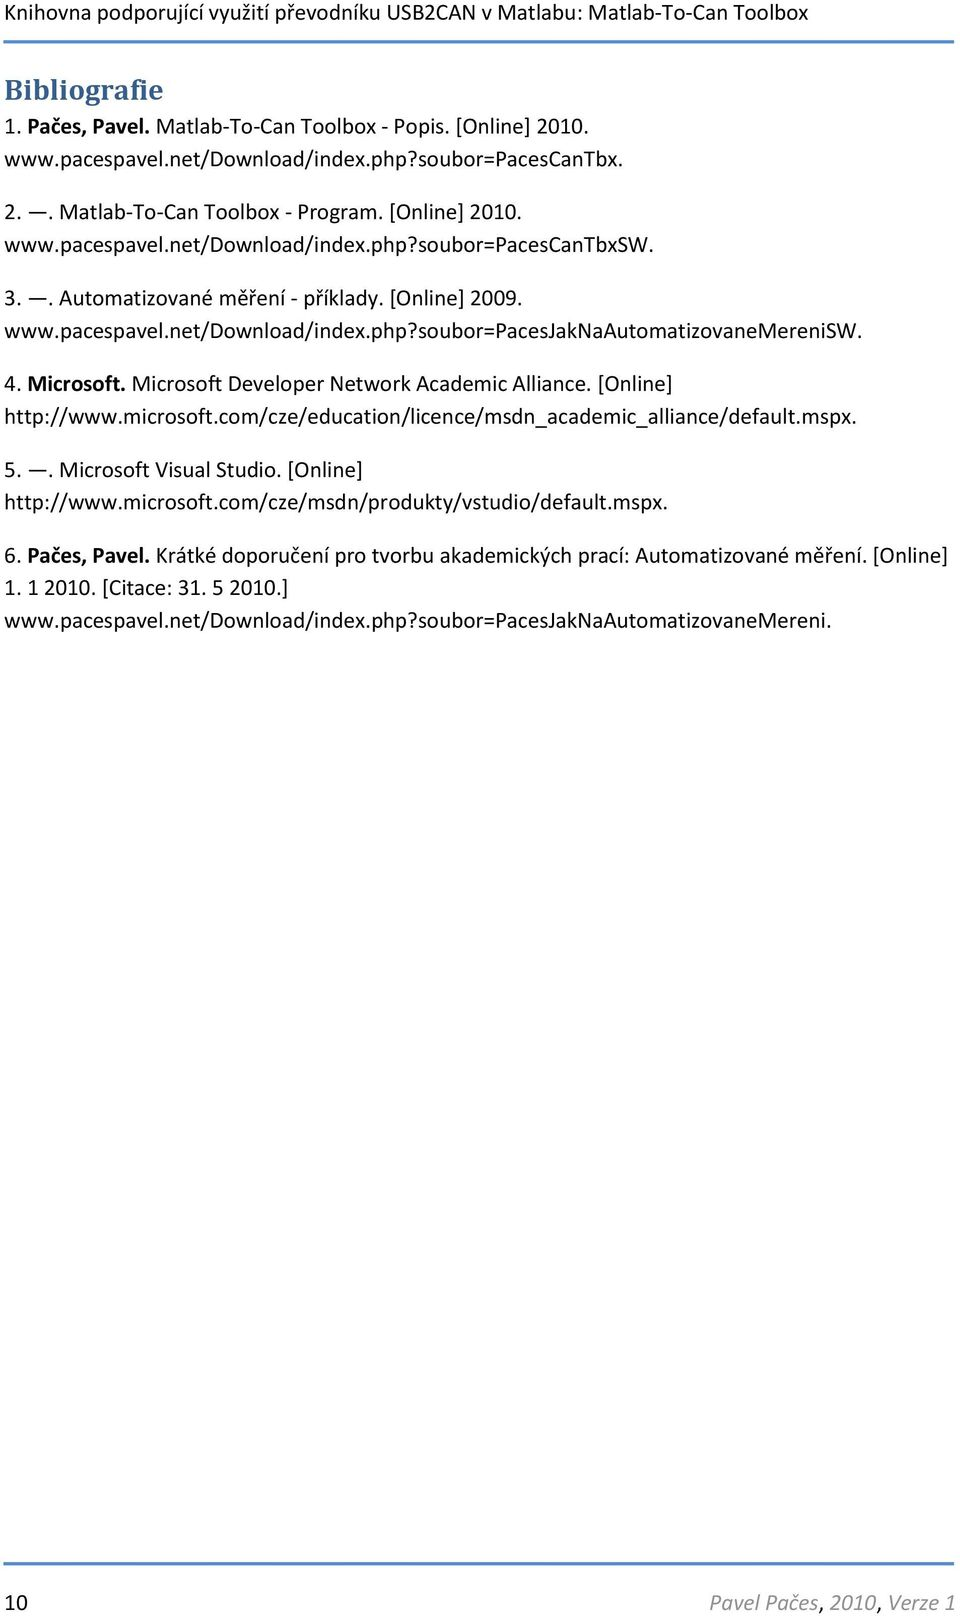 [Online] http://www.microsoft.com/cze/education/licence/msdn_academic_alliance/default.mspx. 5.. Microsoft Visual Studio. [Online] http://www.microsoft.com/cze/msdn/produkty/vstudio/default.mspx. 6.